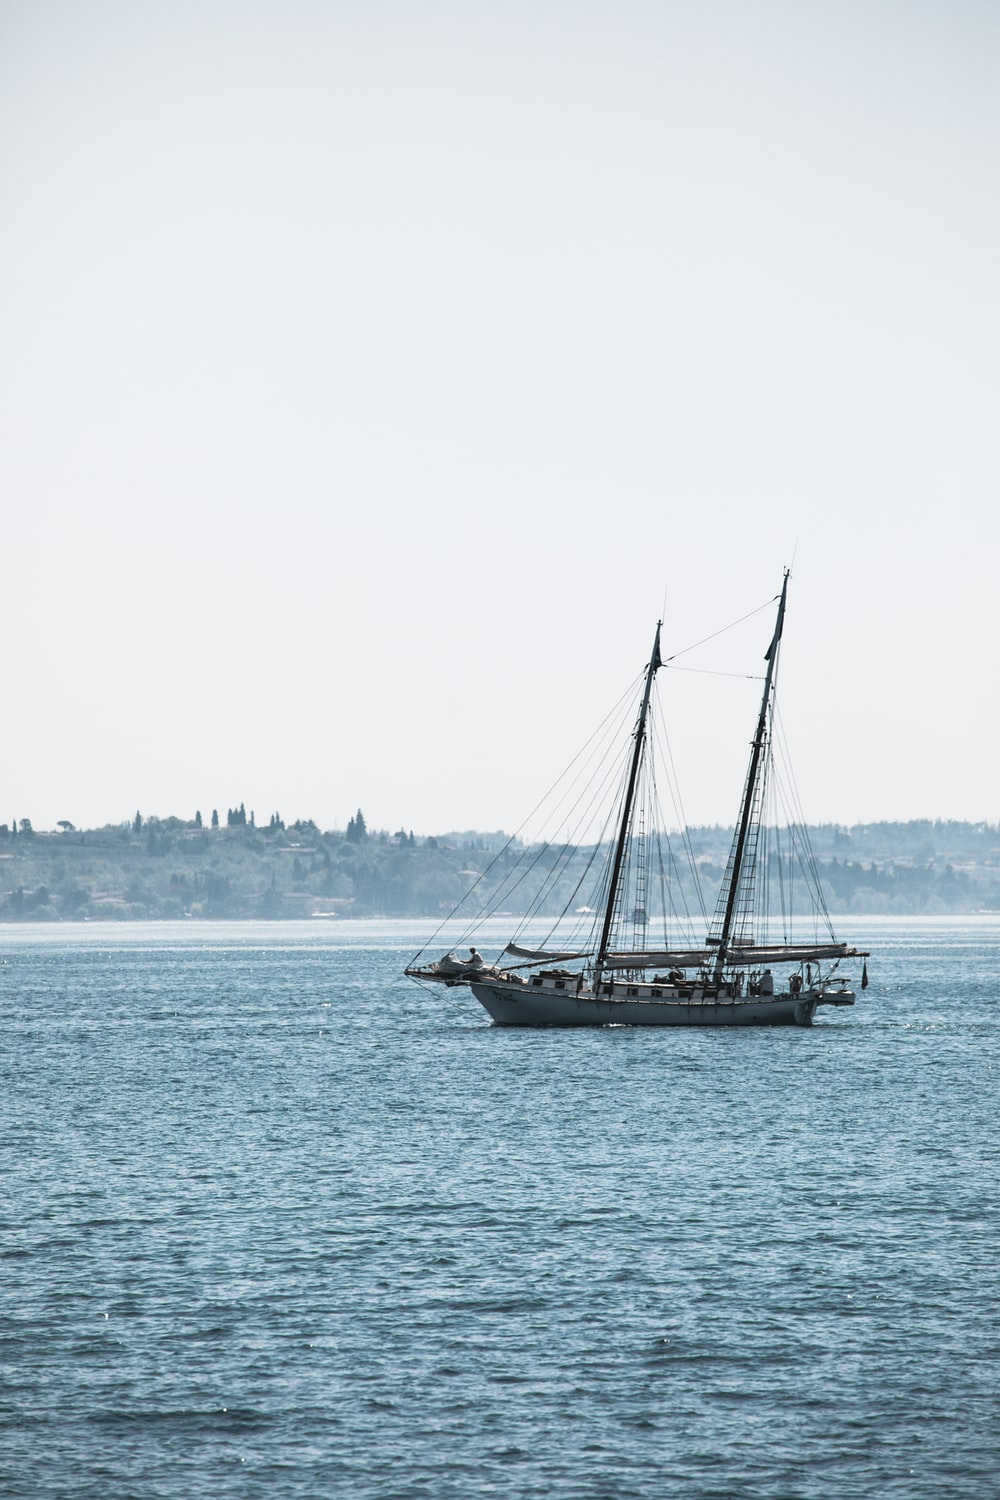 white ship sailing on body of water